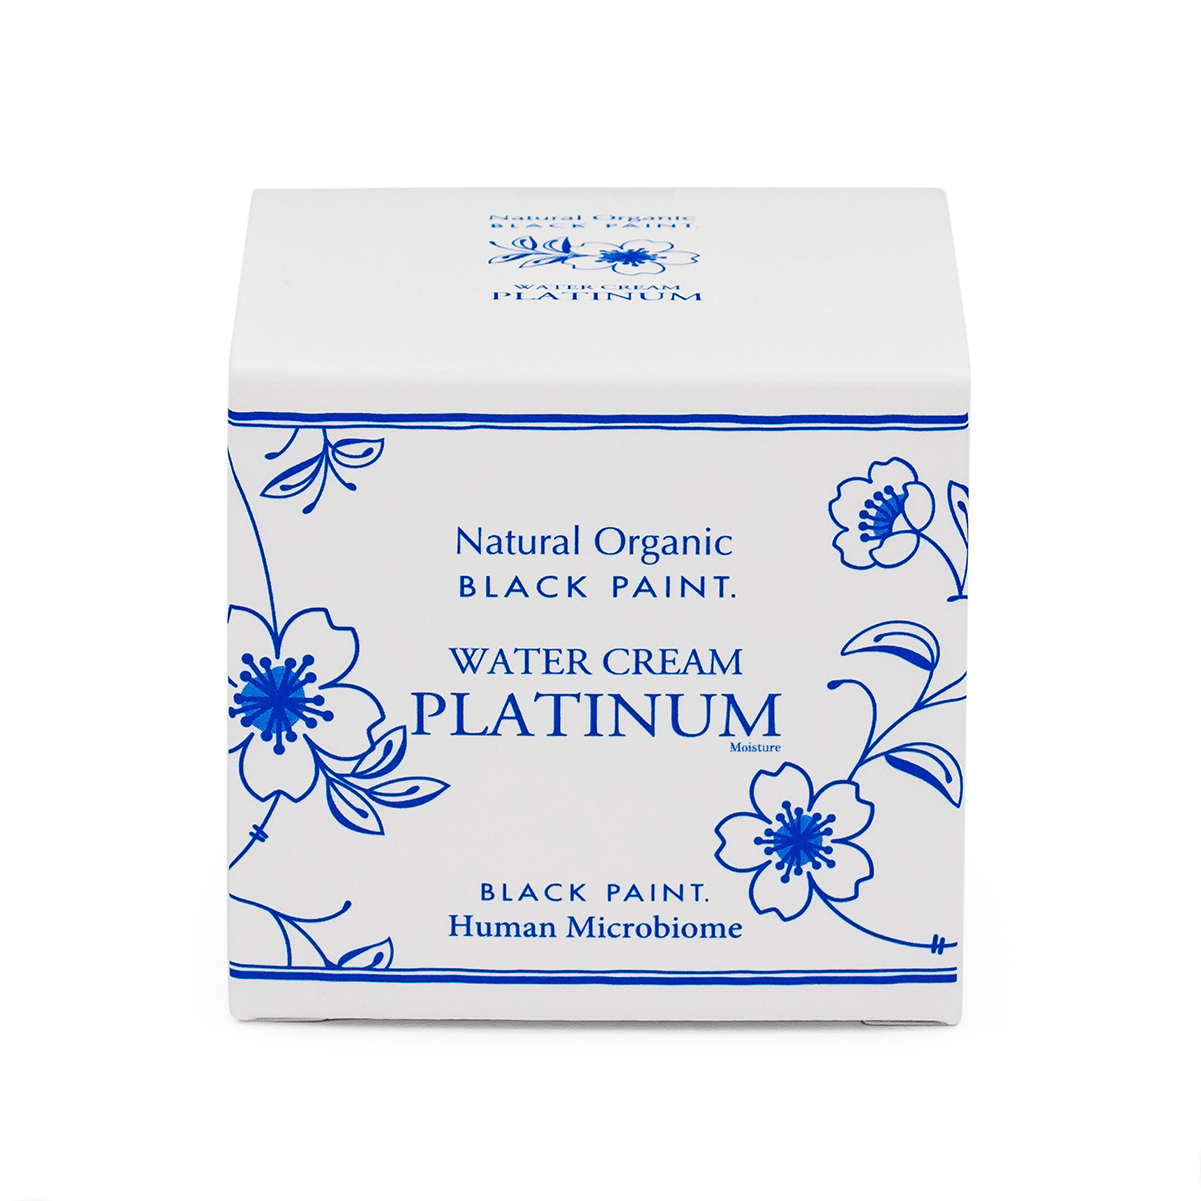 Water Cream Platinum 100g with Human Microbiome - box front